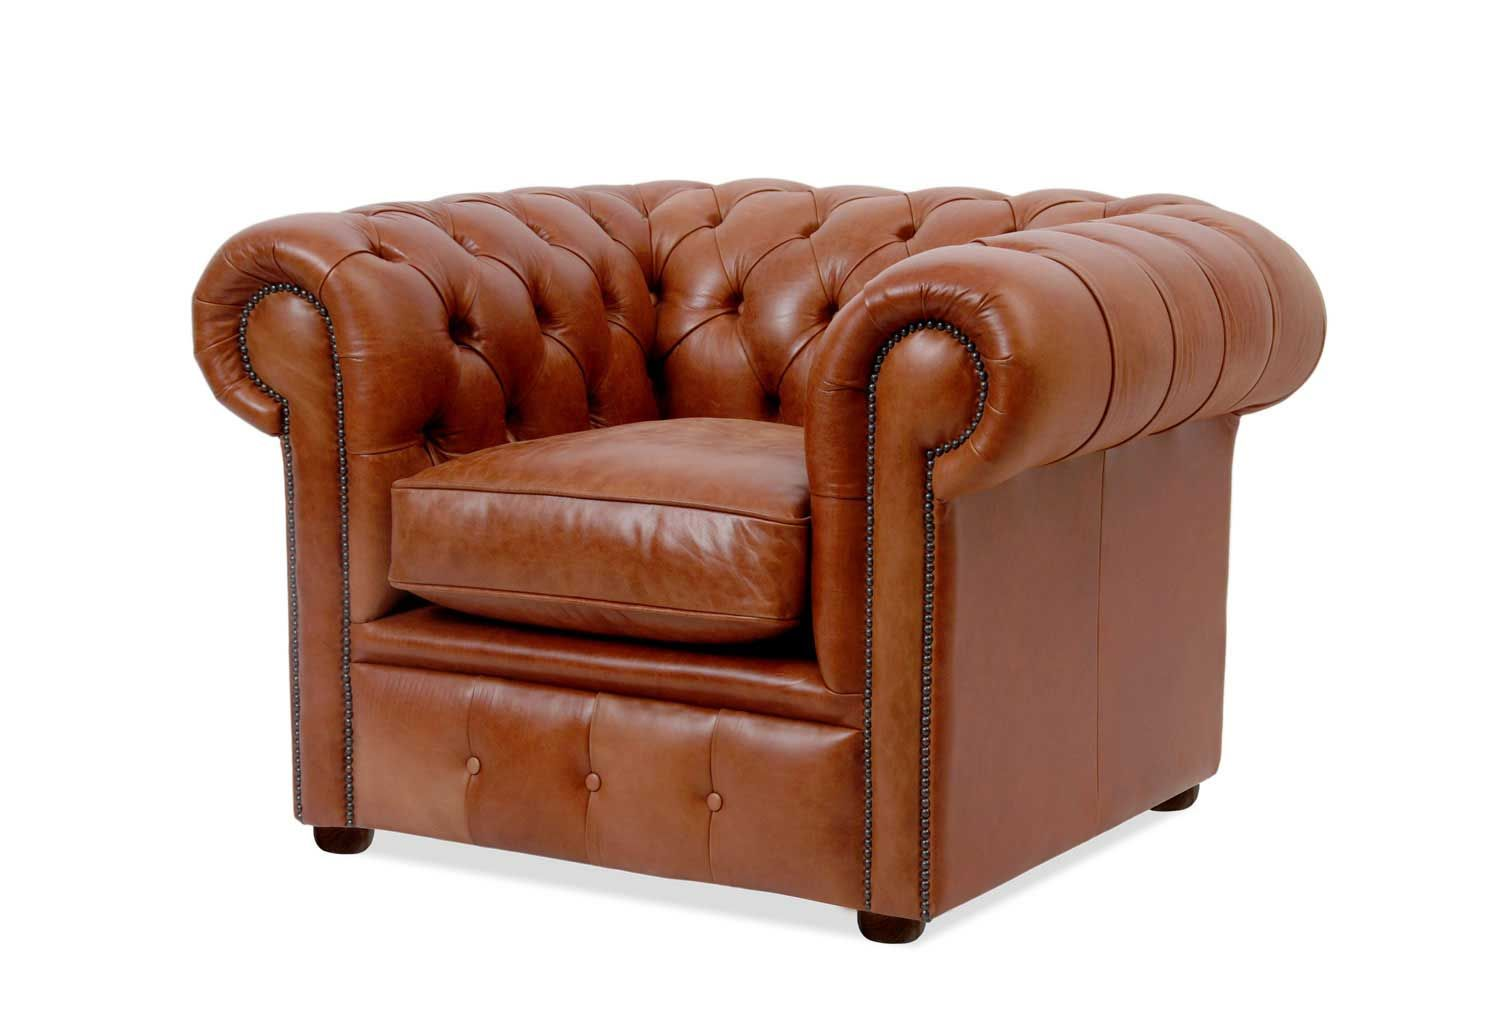 Chesterfield Sessel Clubsessel Brighton Chesterfield Sessel Designermöbel